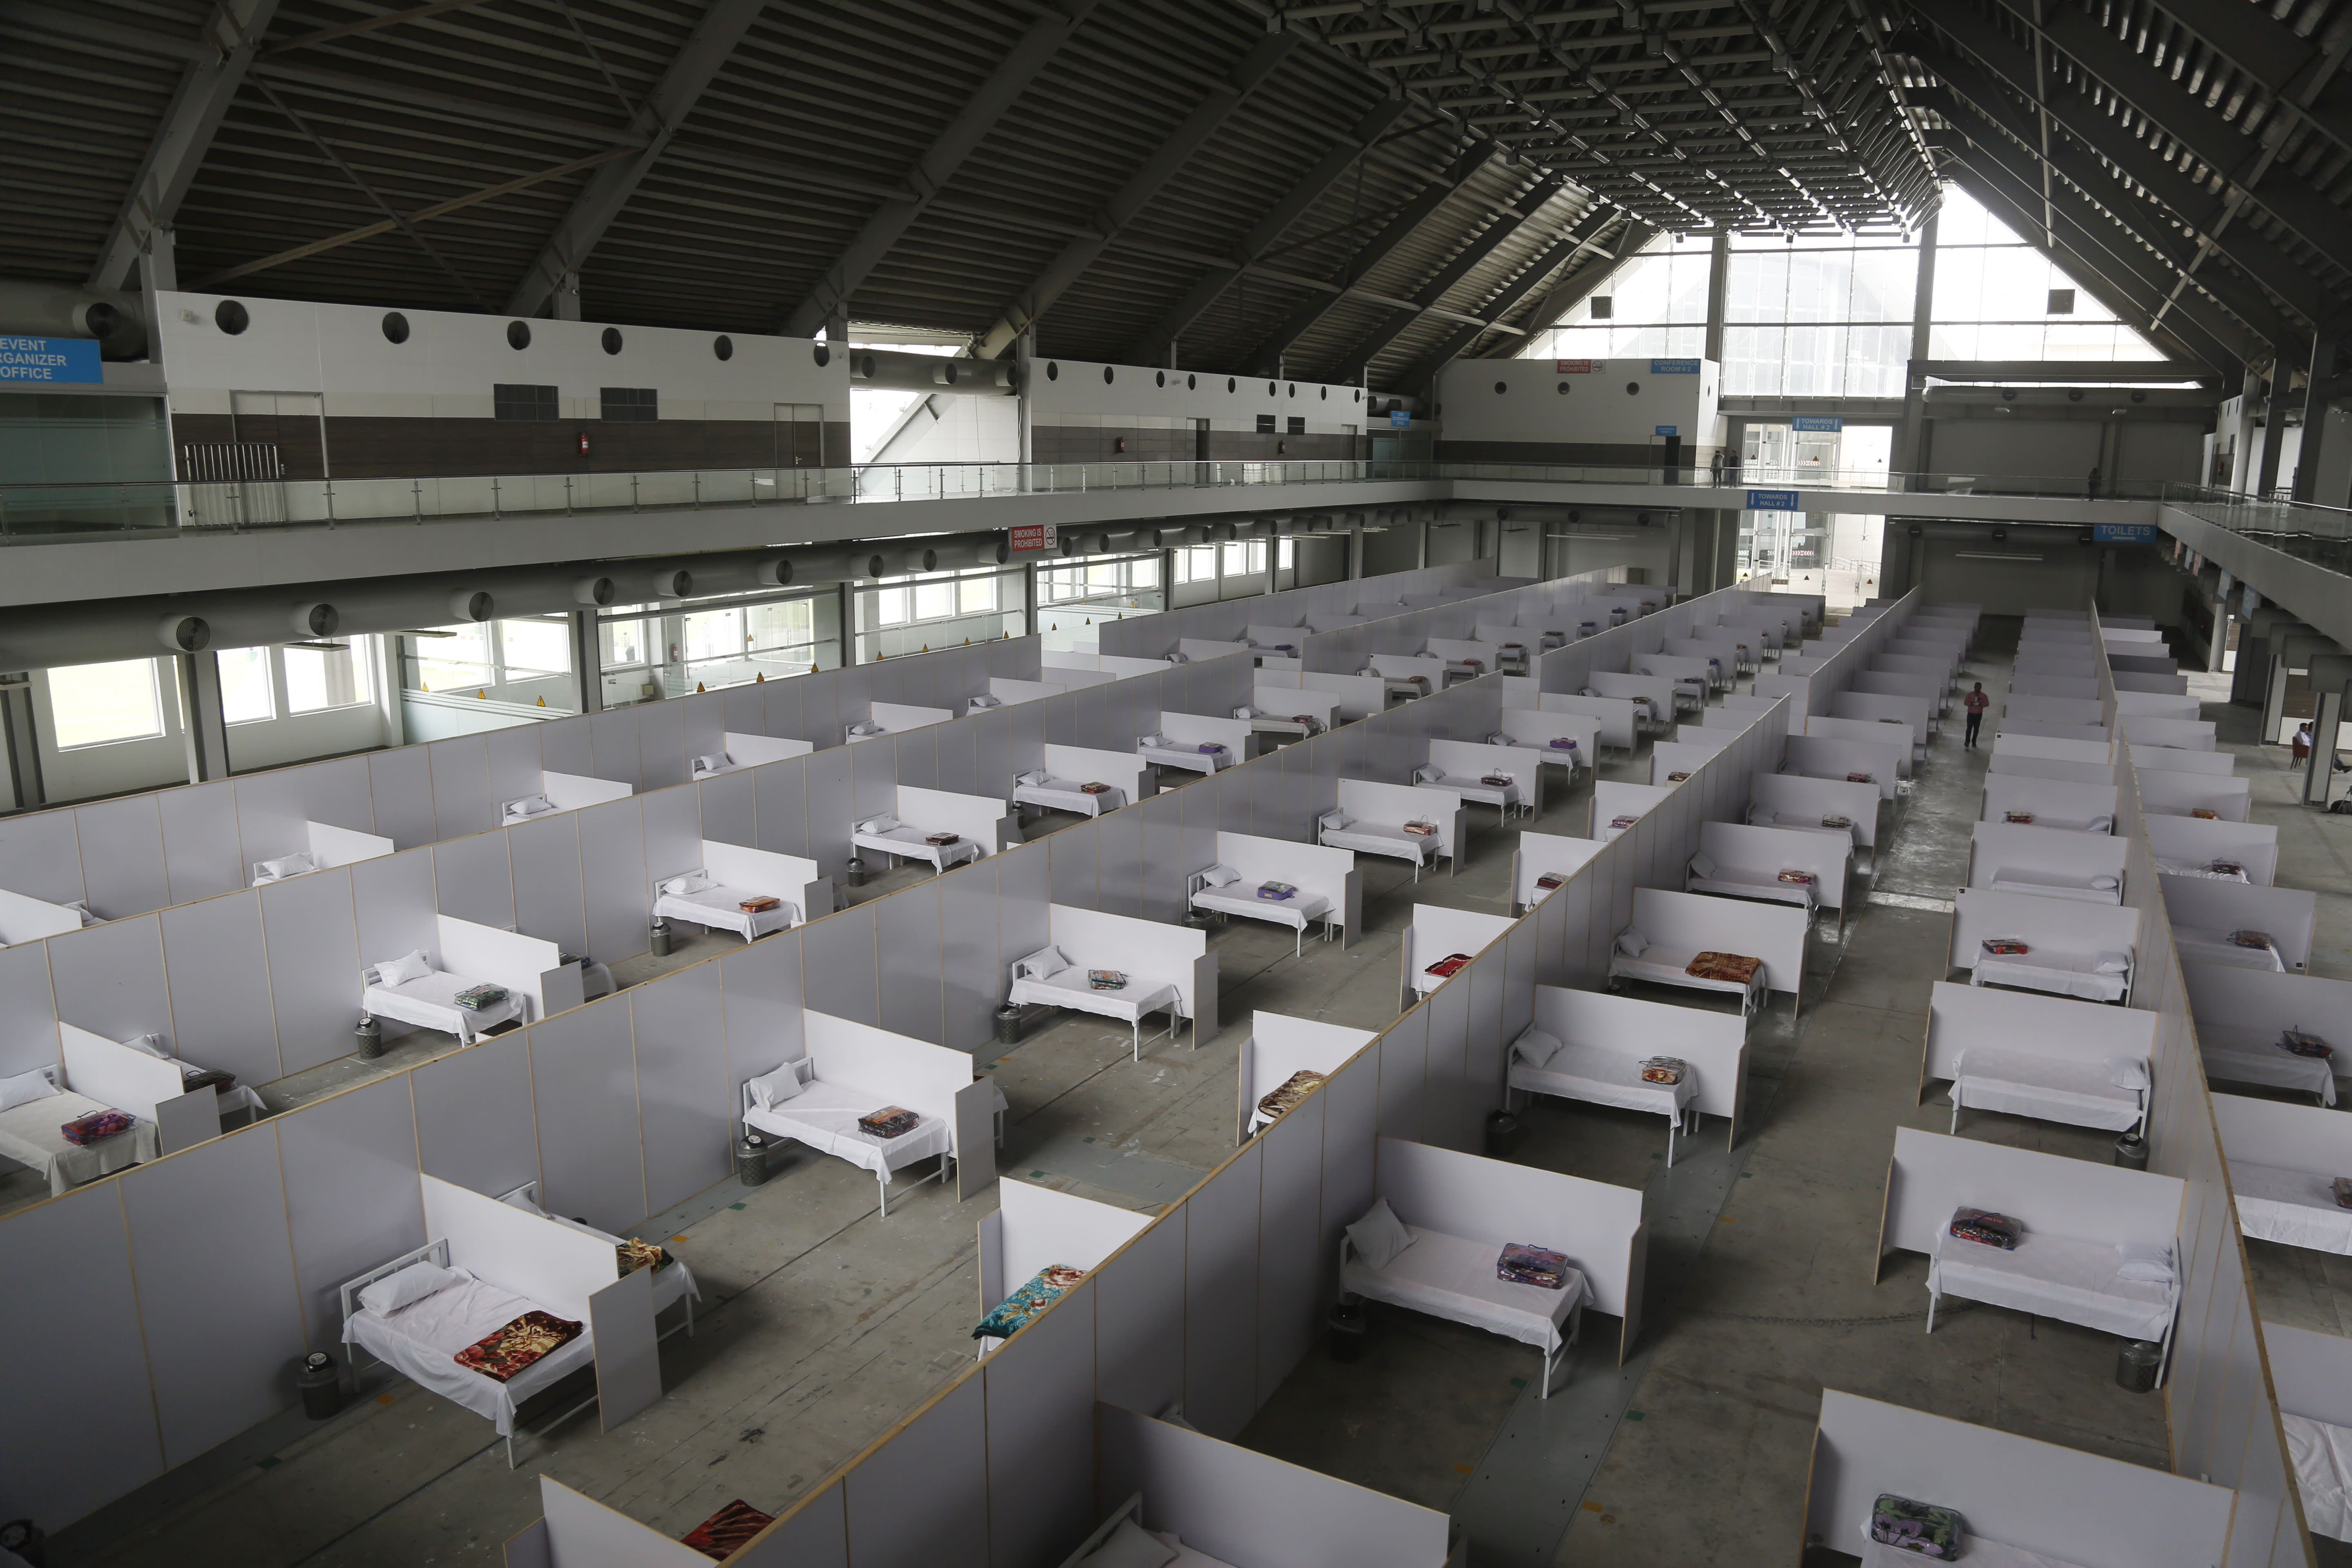 An emergency hospital is set up with nine hundreds beds for coronavirus infected patients, in the Expo Center, Lahore, Pakistan, Thursday, March 26, 2020. The virus causes mild or moderate symptoms for most people, but for some, especially older adults and people with existing health problems, it can cause more severe illness or death. (AP Photo/K.M. Chaudhry)